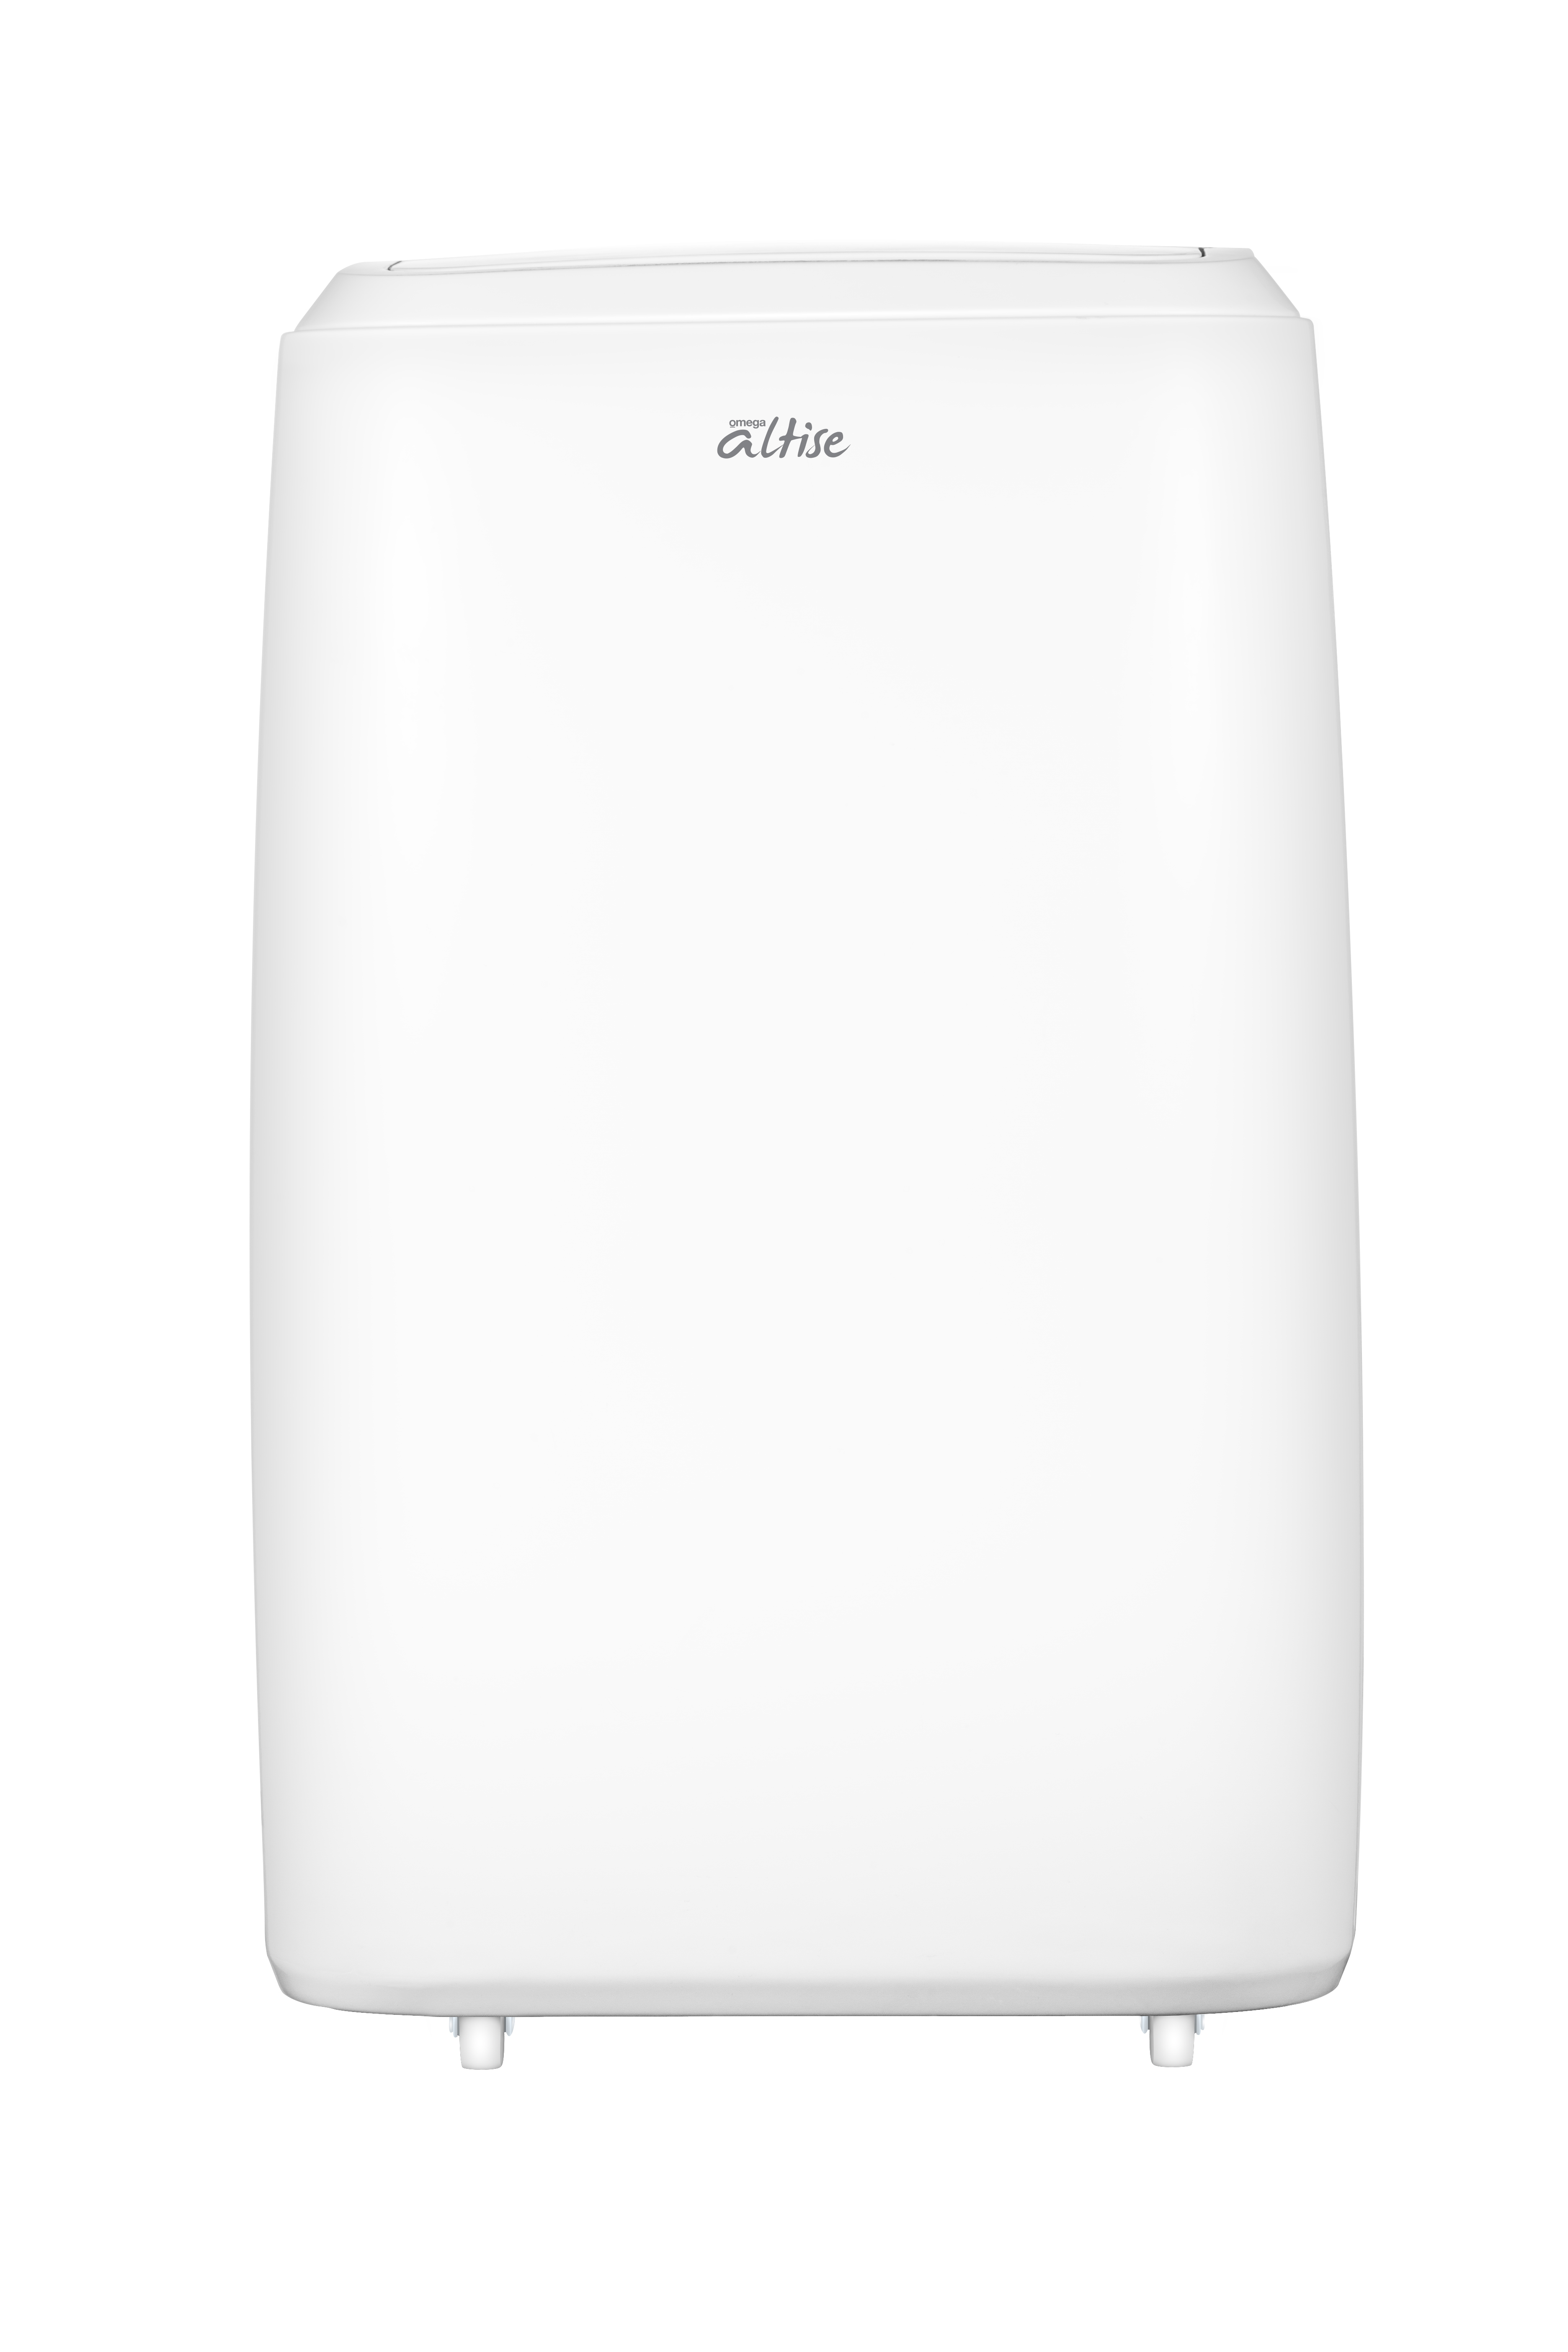 Omega Altise Product 4.6kW Slimline Portable Air-Conditioner(OAPC167)